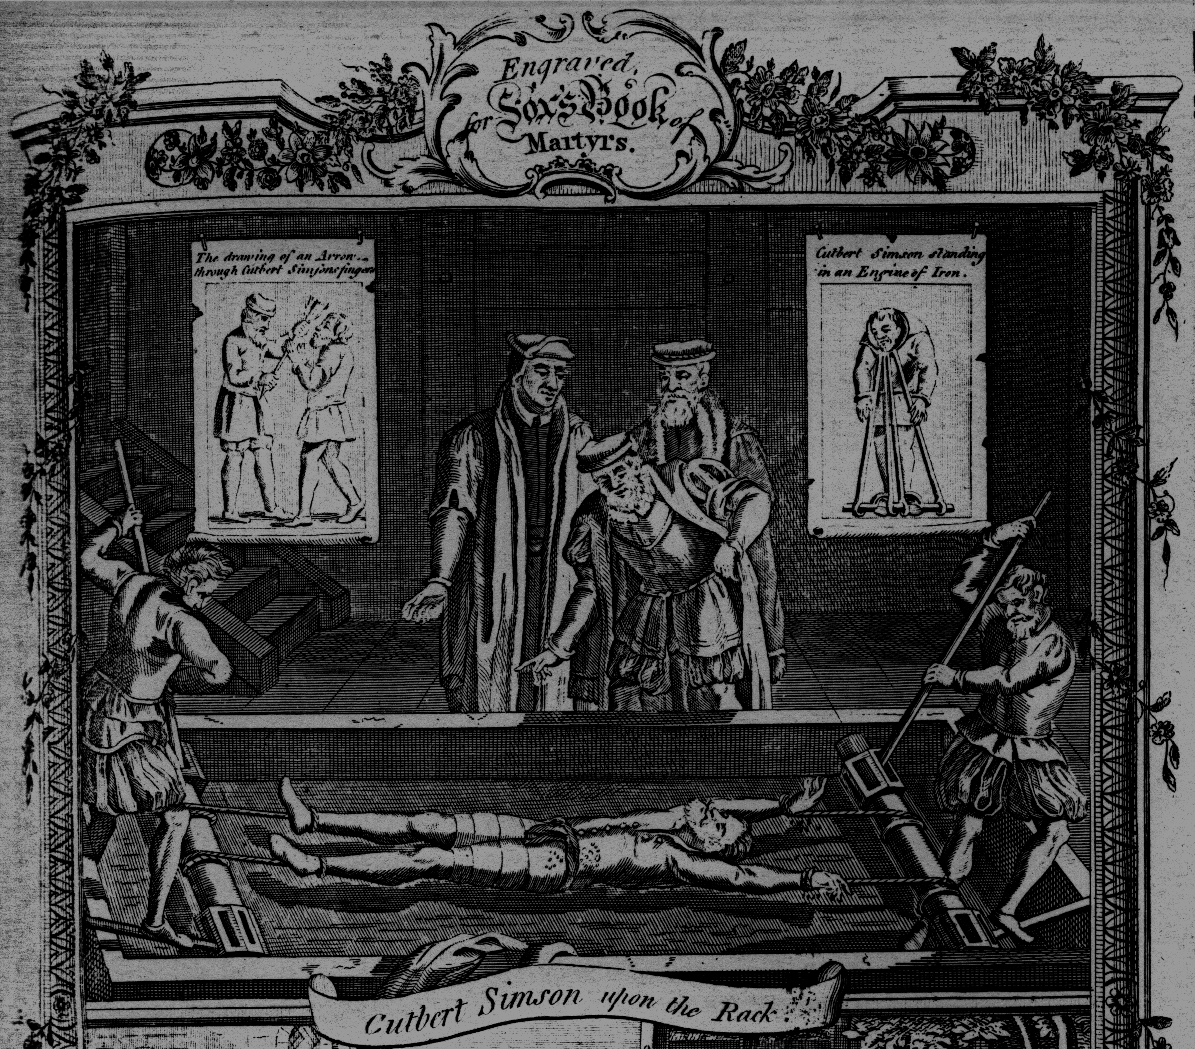 Woodcut from the 1563 Edition of Foxe's Book of Martyrs.